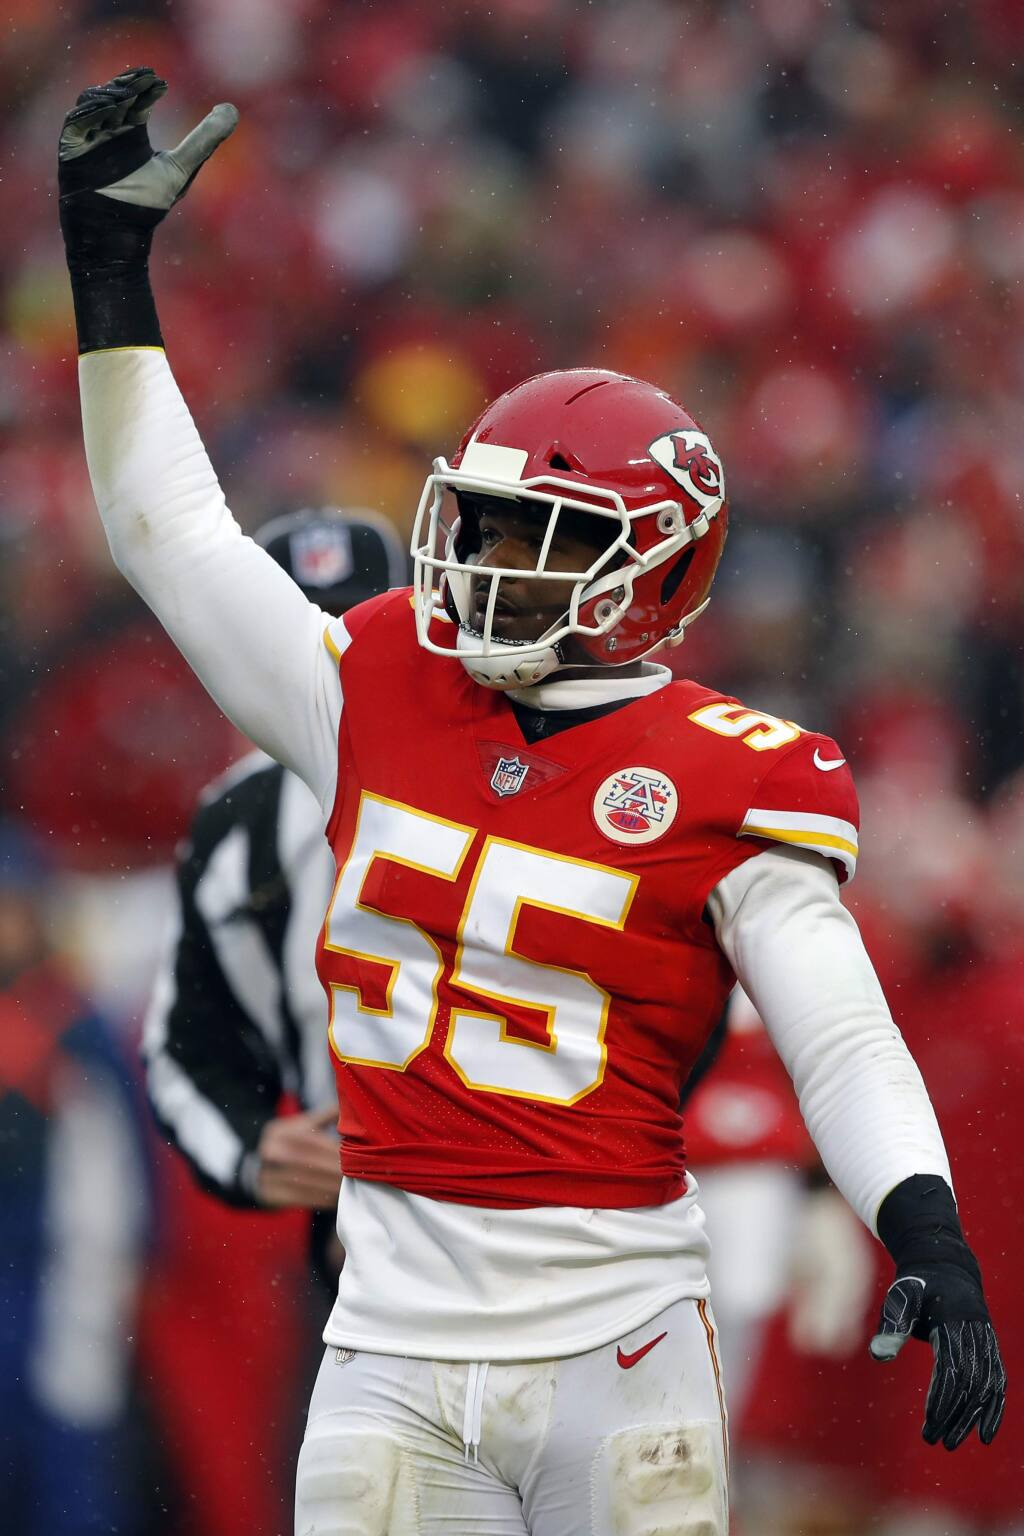 Kansas City Chiefs linebacker Dee Ford gestures during the first half of a divisional playoff game against the Indianapolis Colts in Kansas City, Mo., Saturday, Jan. 12, 2019. (AP Photo/Charlie Neibergall)